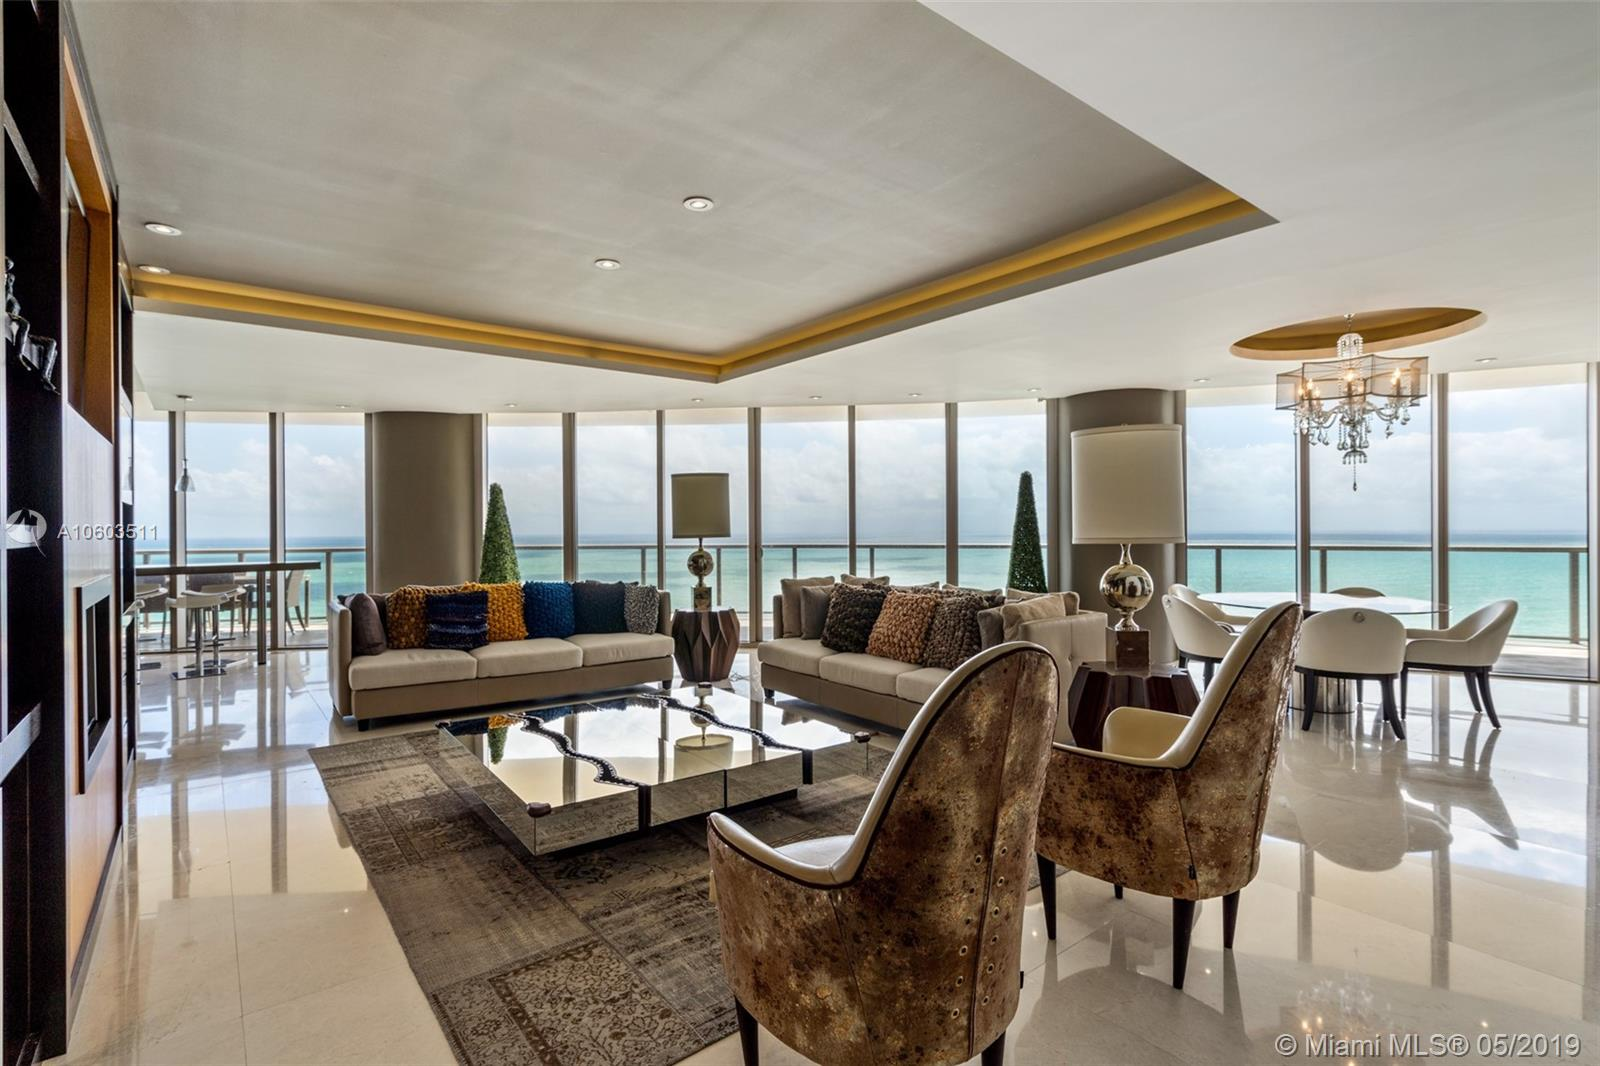 9703 Collins Ave #2100 Property Photo - Bal Harbour, FL real estate listing